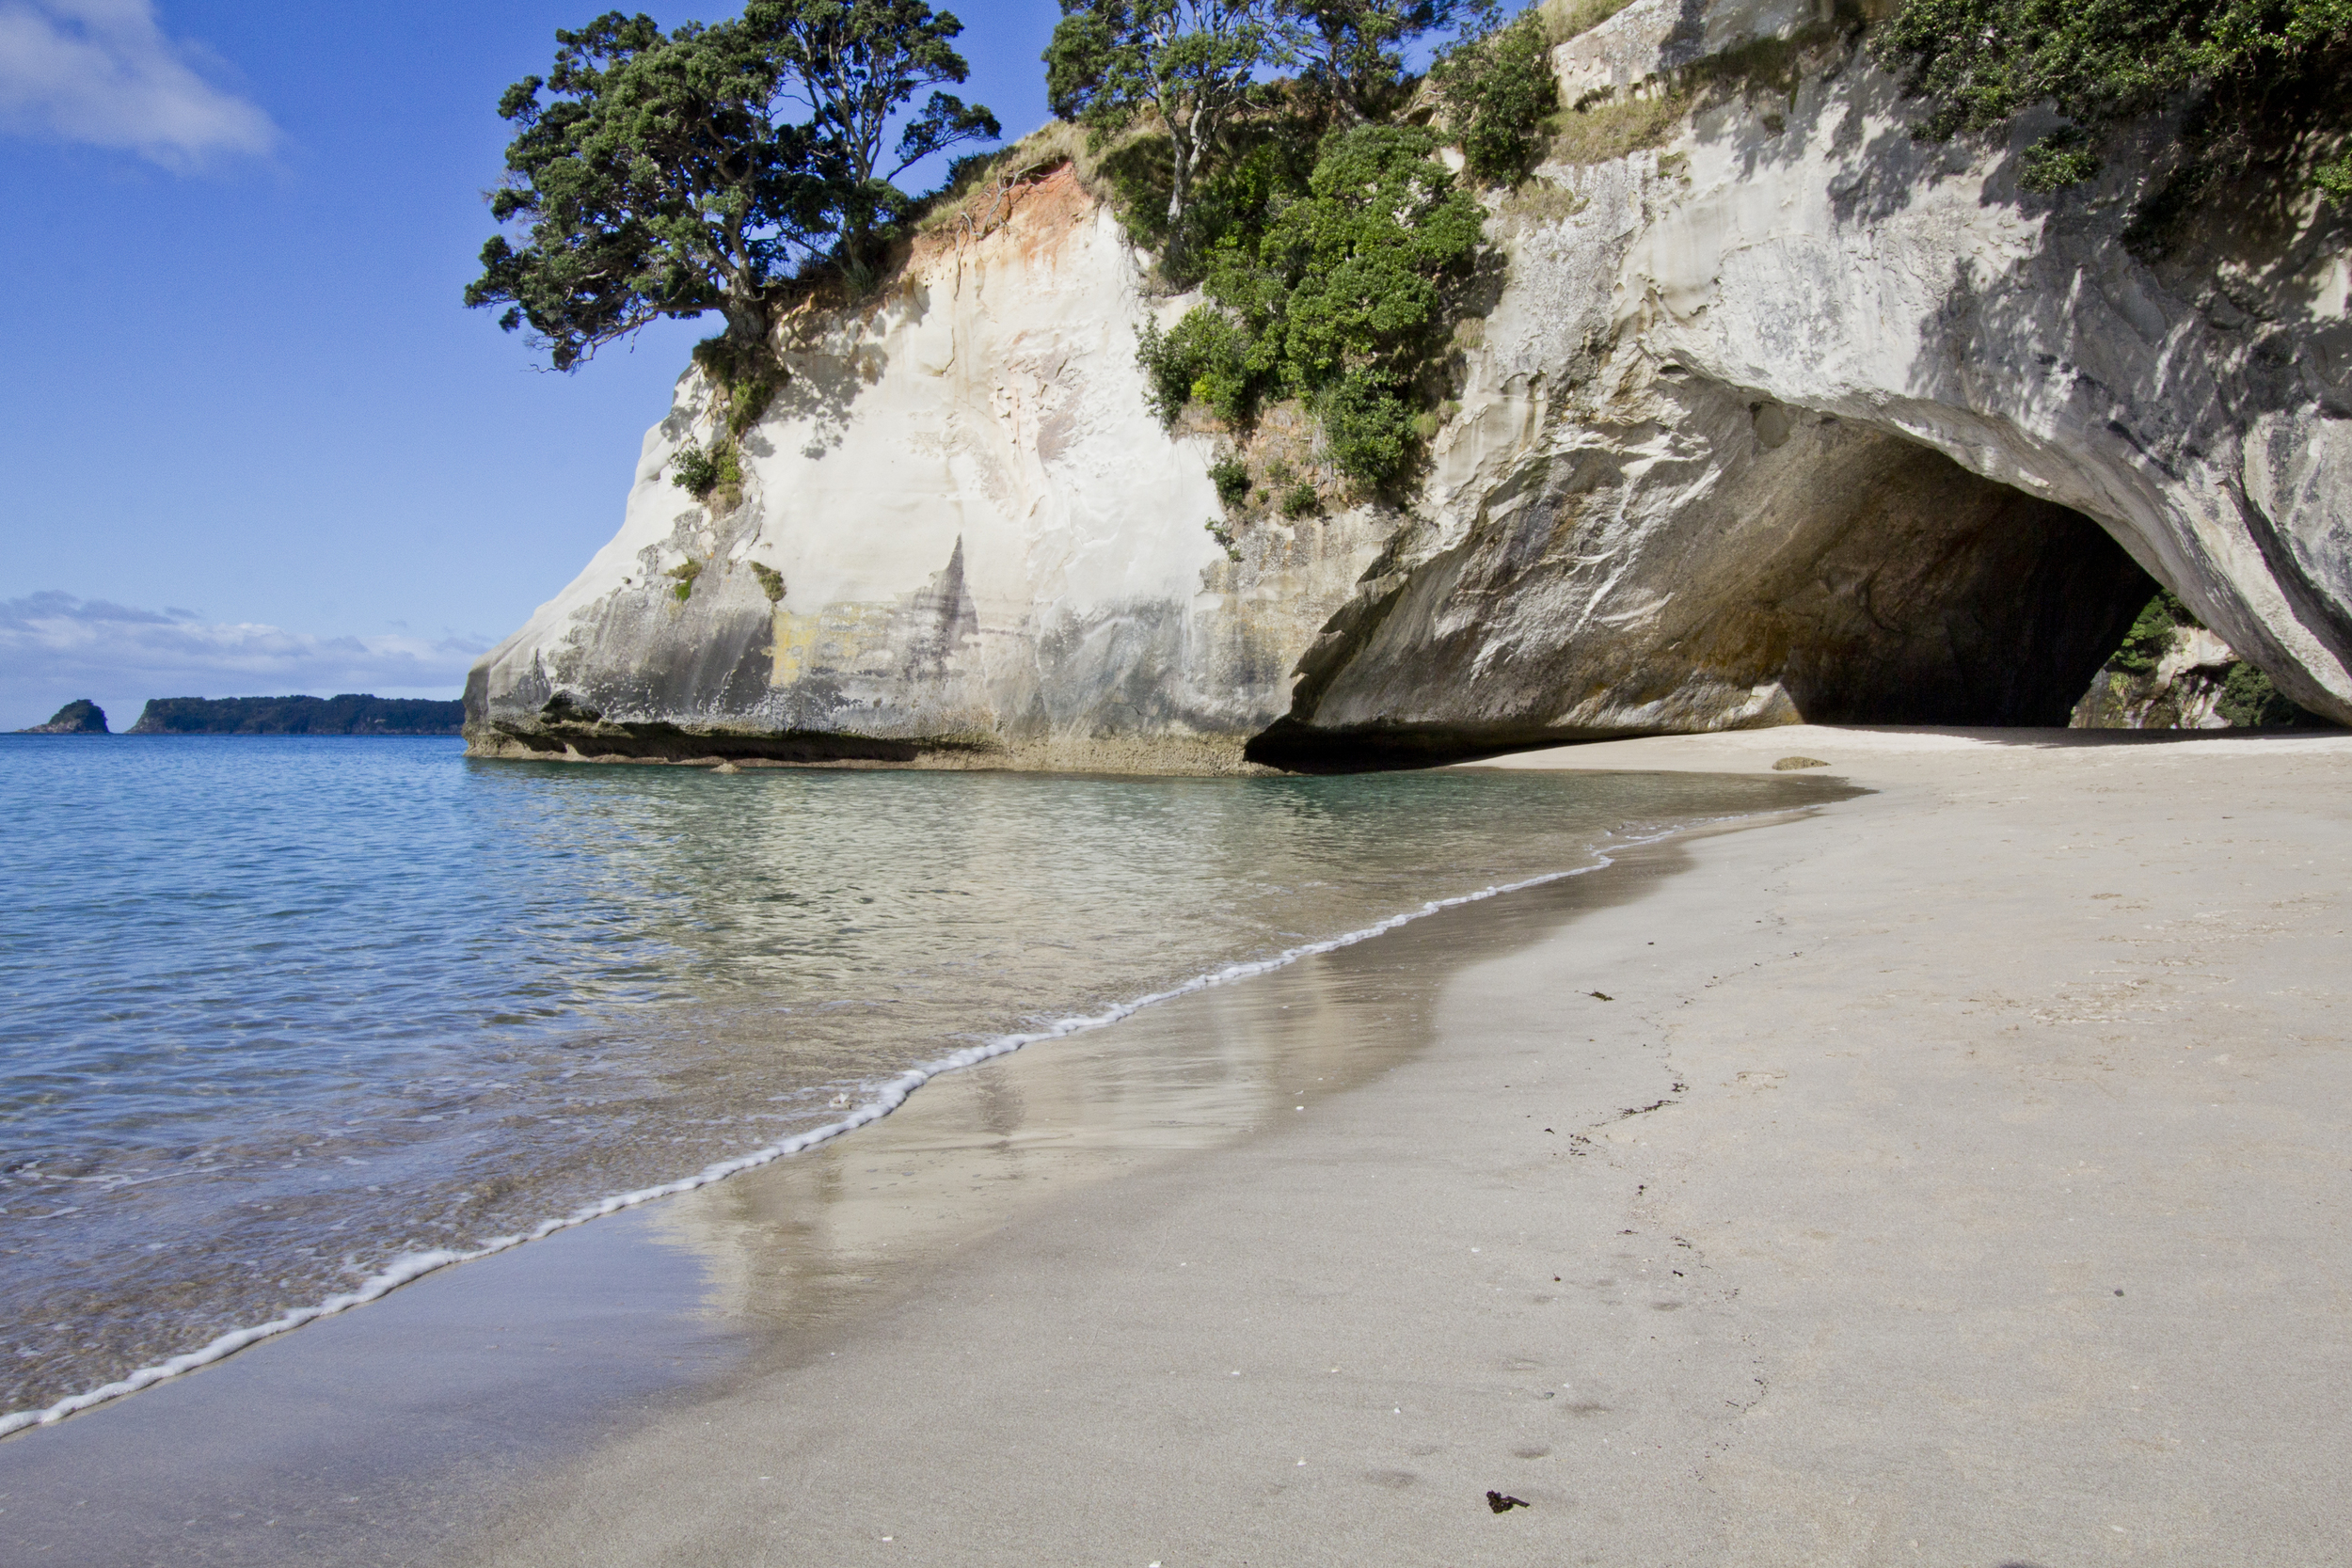 Cathedral Cove, accessible by an hour long hike, looks like the perfect beach for a relaxing day